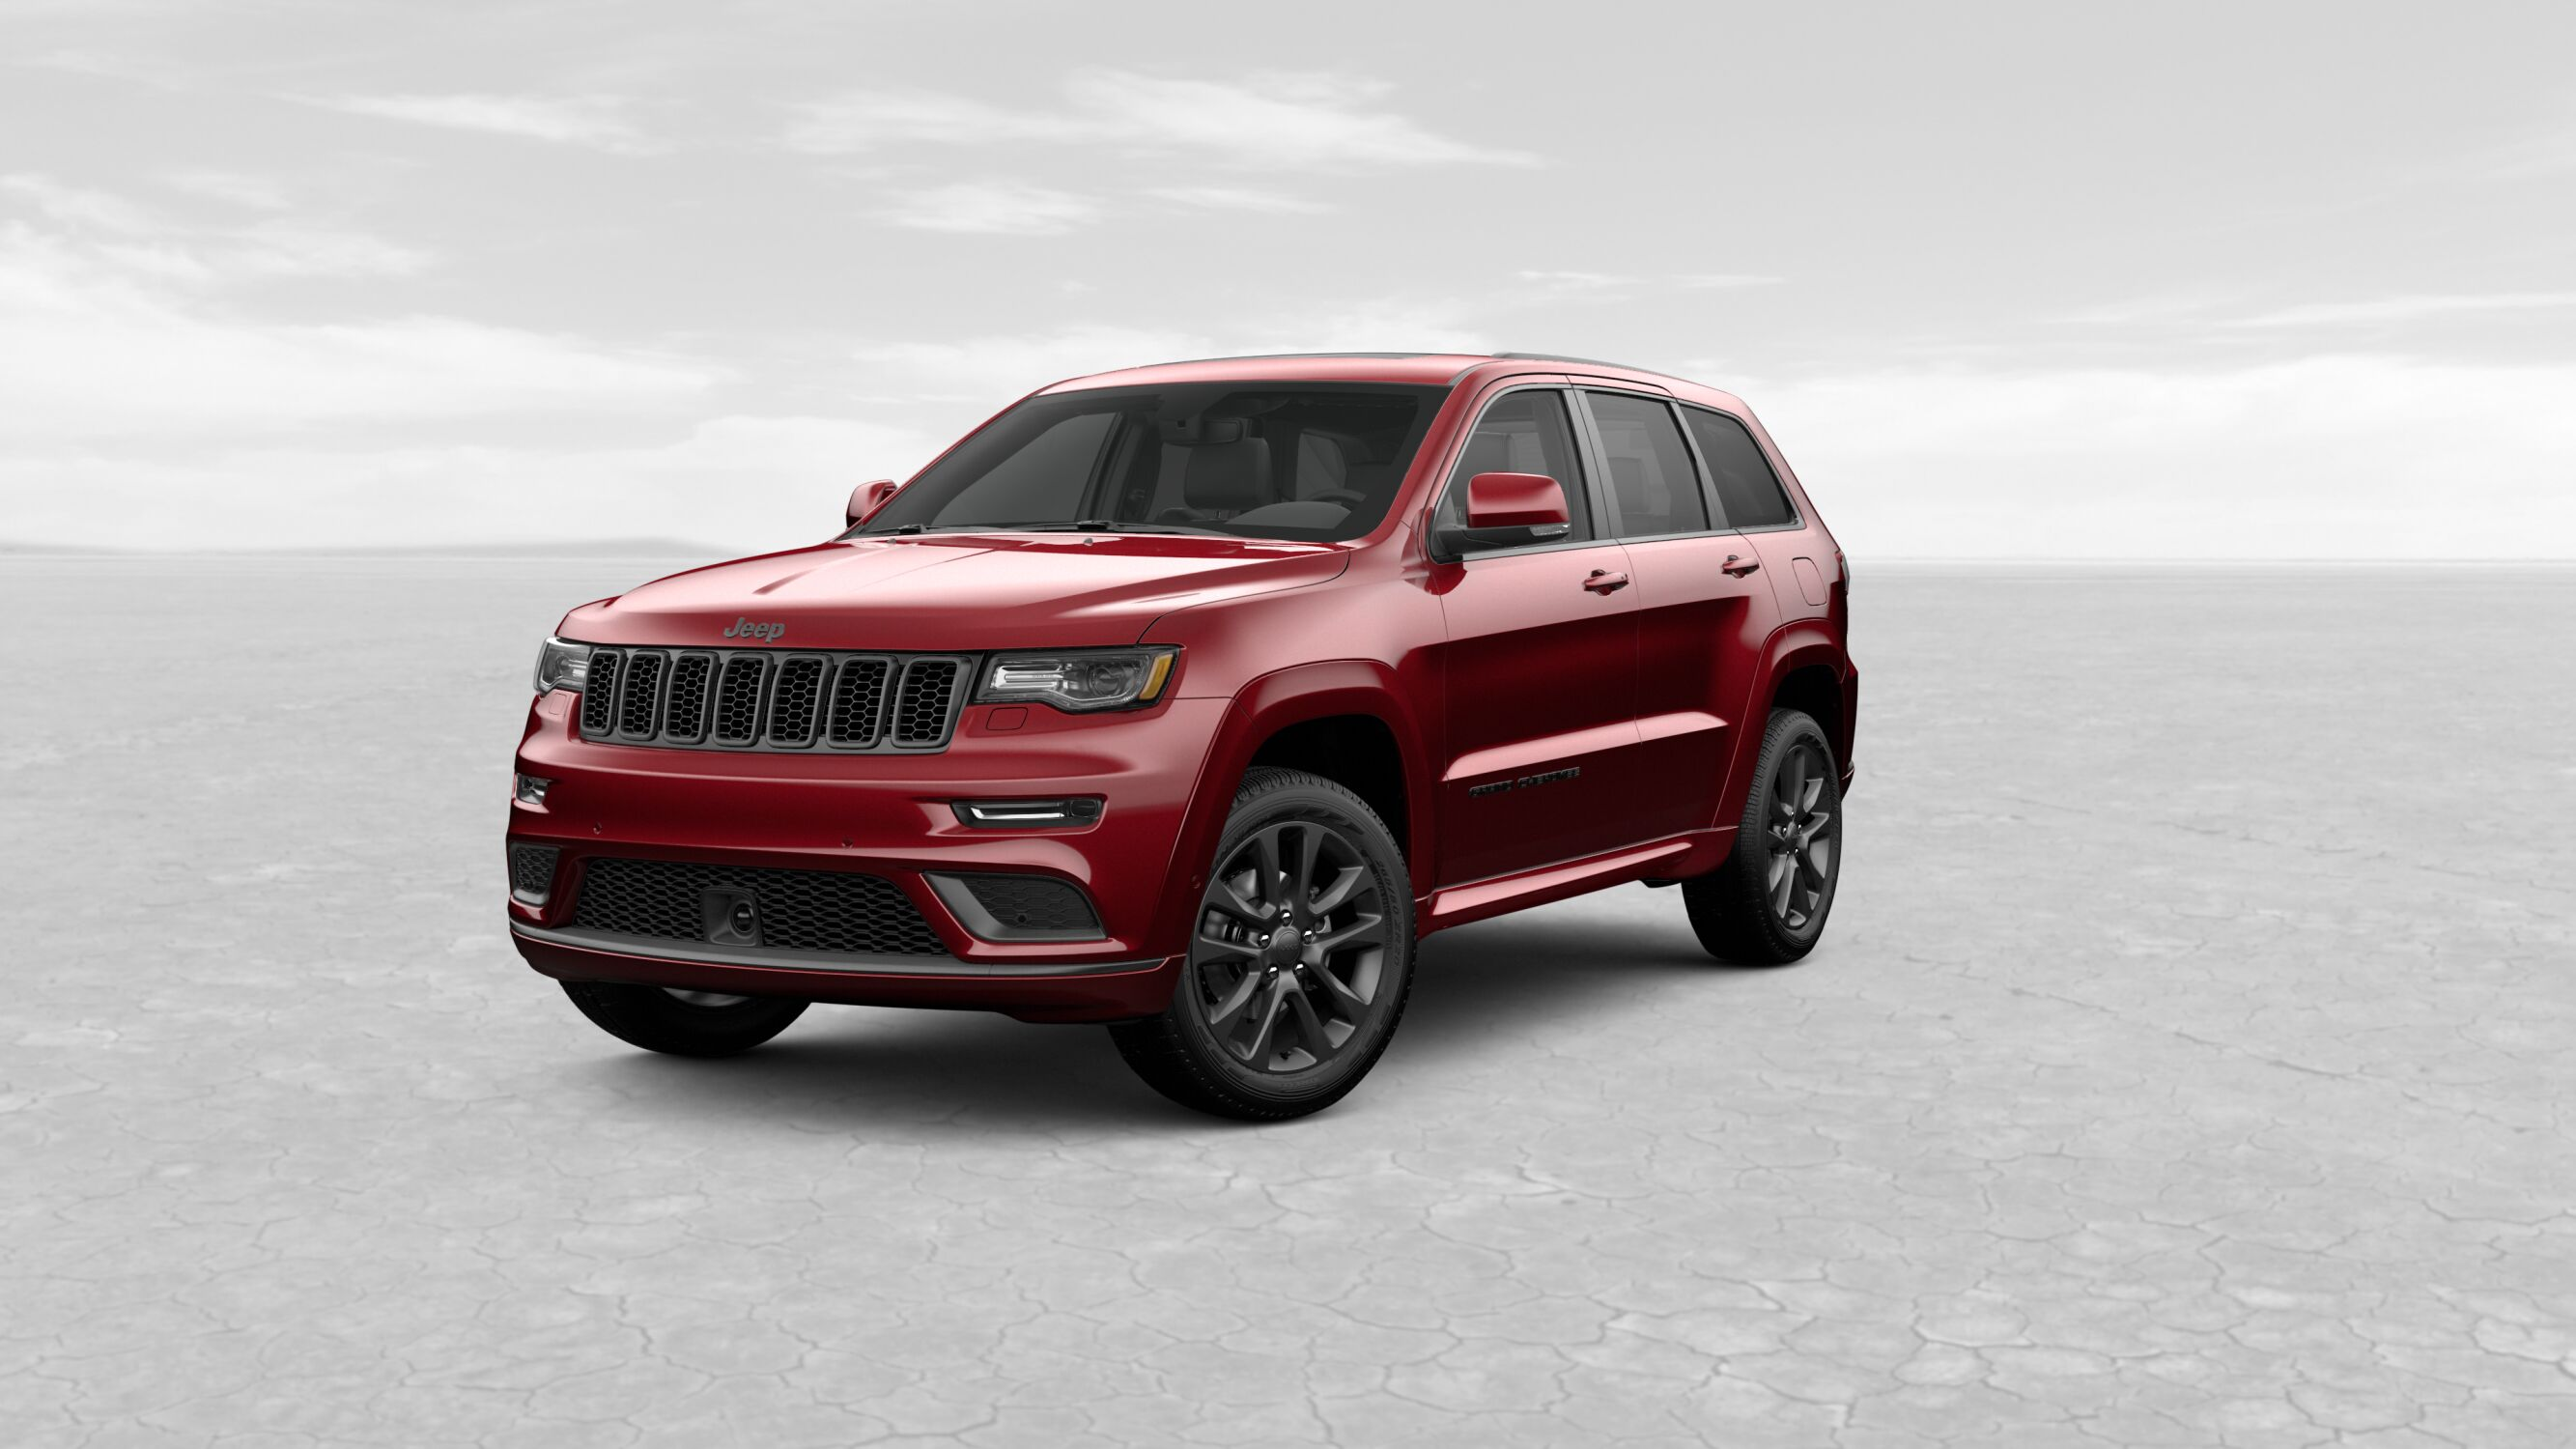 2019 Jeep Grand Cherokee High Altitude Red Exterior Front View